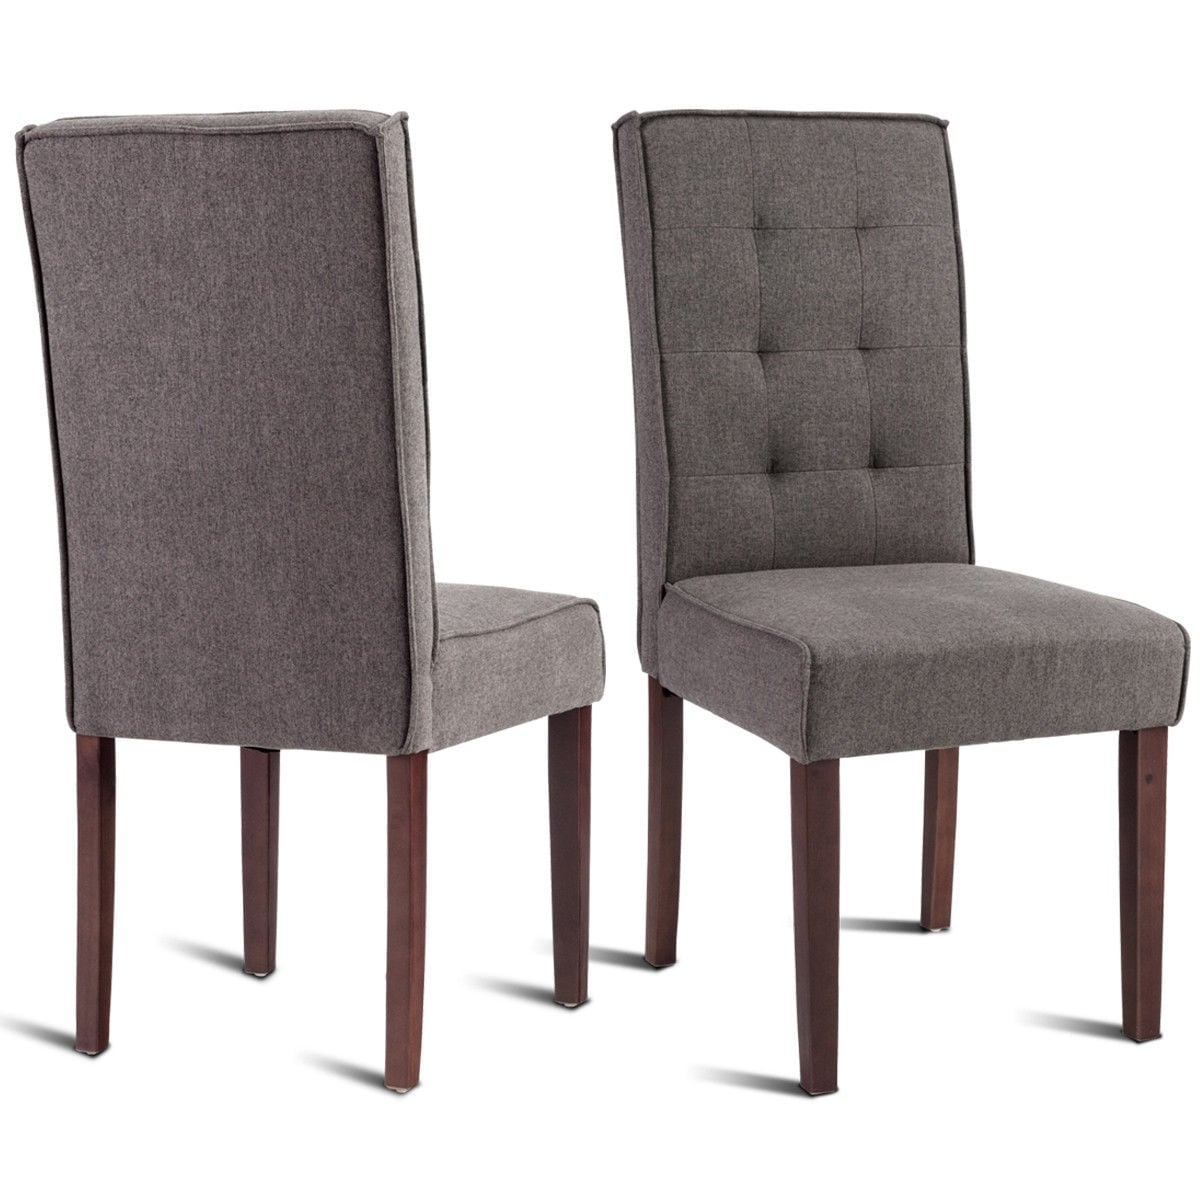 Sensational Gymax Set Of 2 Parson Dining Chair Linen Fabric Upholstered With Solid Wood Legs Brown Ncnpc Chair Design For Home Ncnpcorg